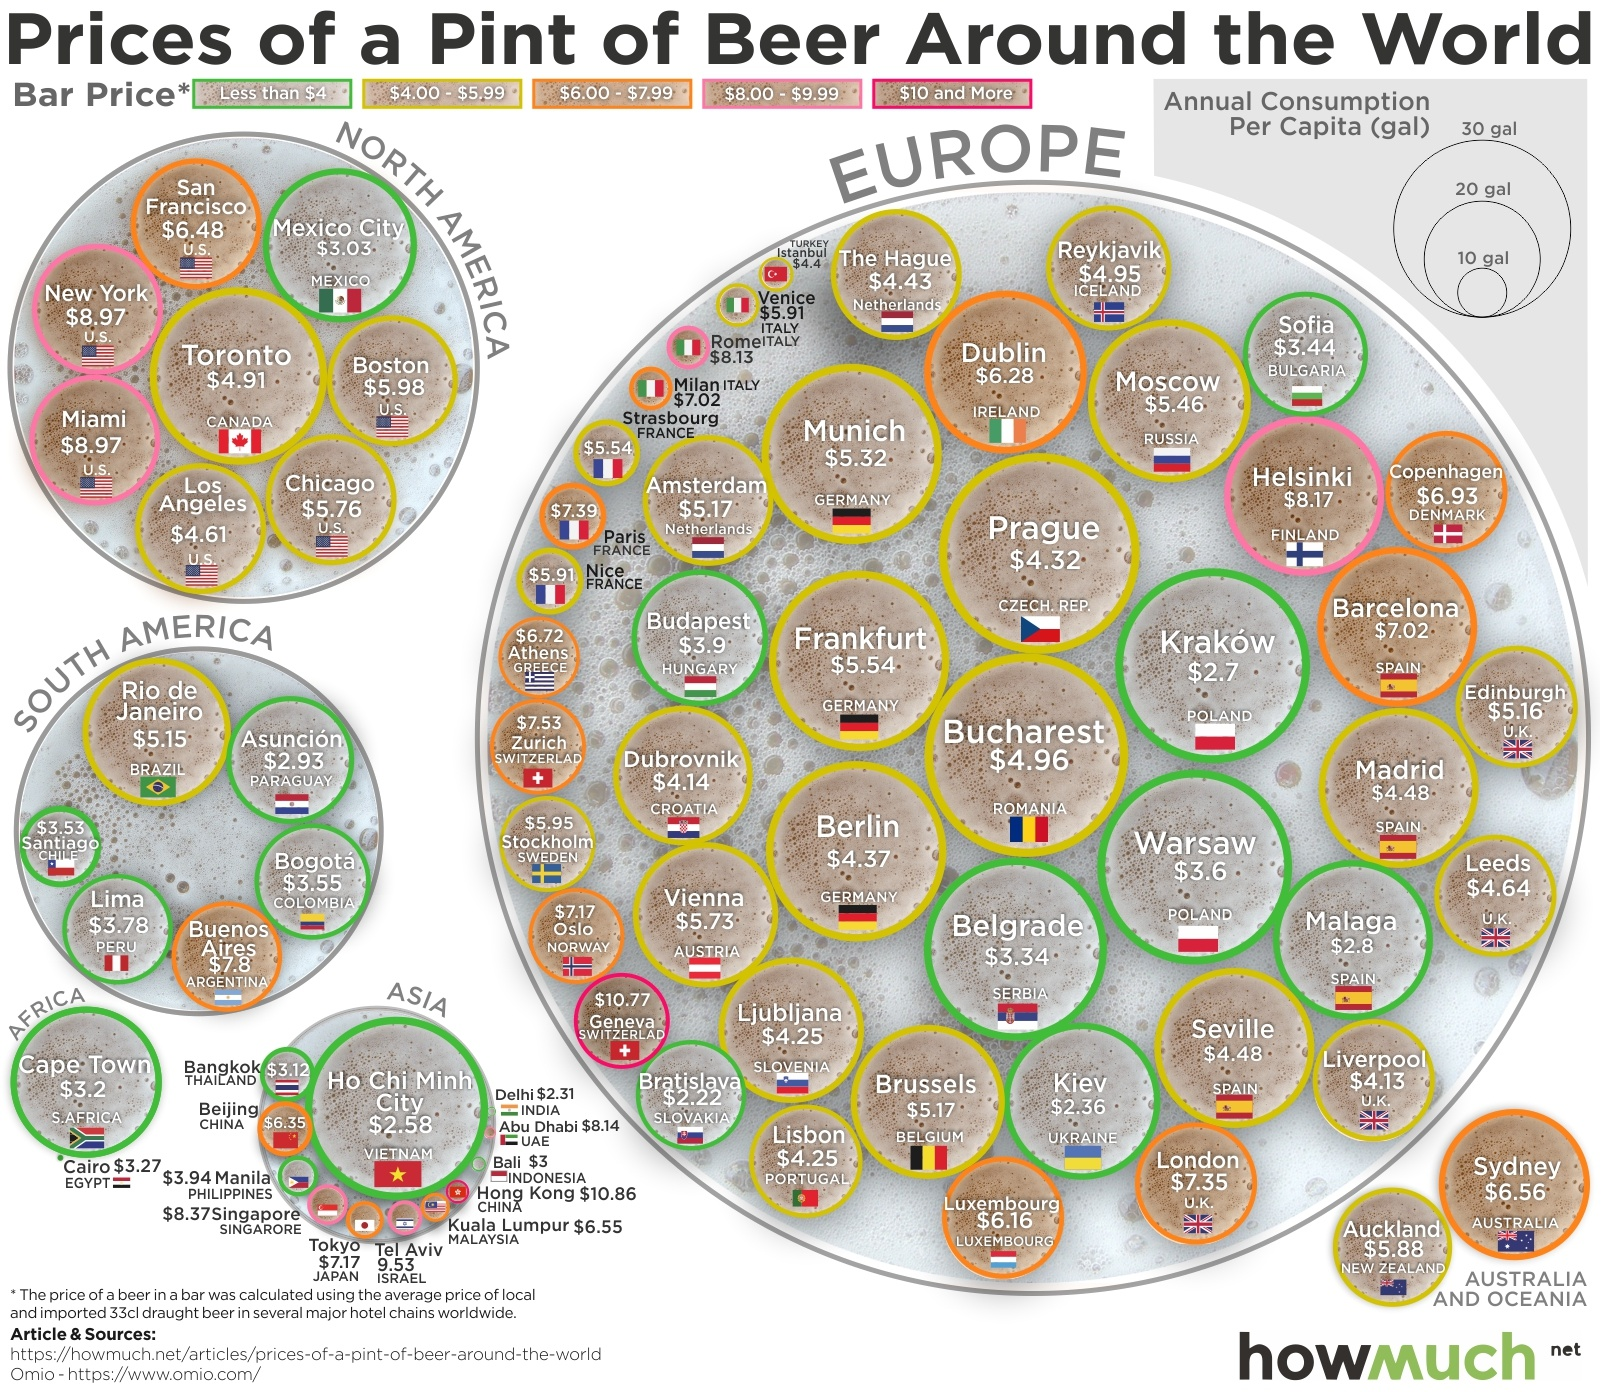 average price of a pint of beer, the Least Expensive Pints of Beer, europe, north america, south america, africa, asia, sydney, australia, bottle of beer, map, the Most Expensive Pints of Beer, cheapest beer, expensive beer, beer, pint of beer, howmuch, Hong Kong, China, Geneva, Switzerland, Tel Aviv, Israel, New York, Miami, USA, Bratislava, Slovakia, Delhi, India, Kiev, Ukraine, Ho Chi Minh City, Vietnam, Kraków, Poland, The Wall Street Journal, OMIO